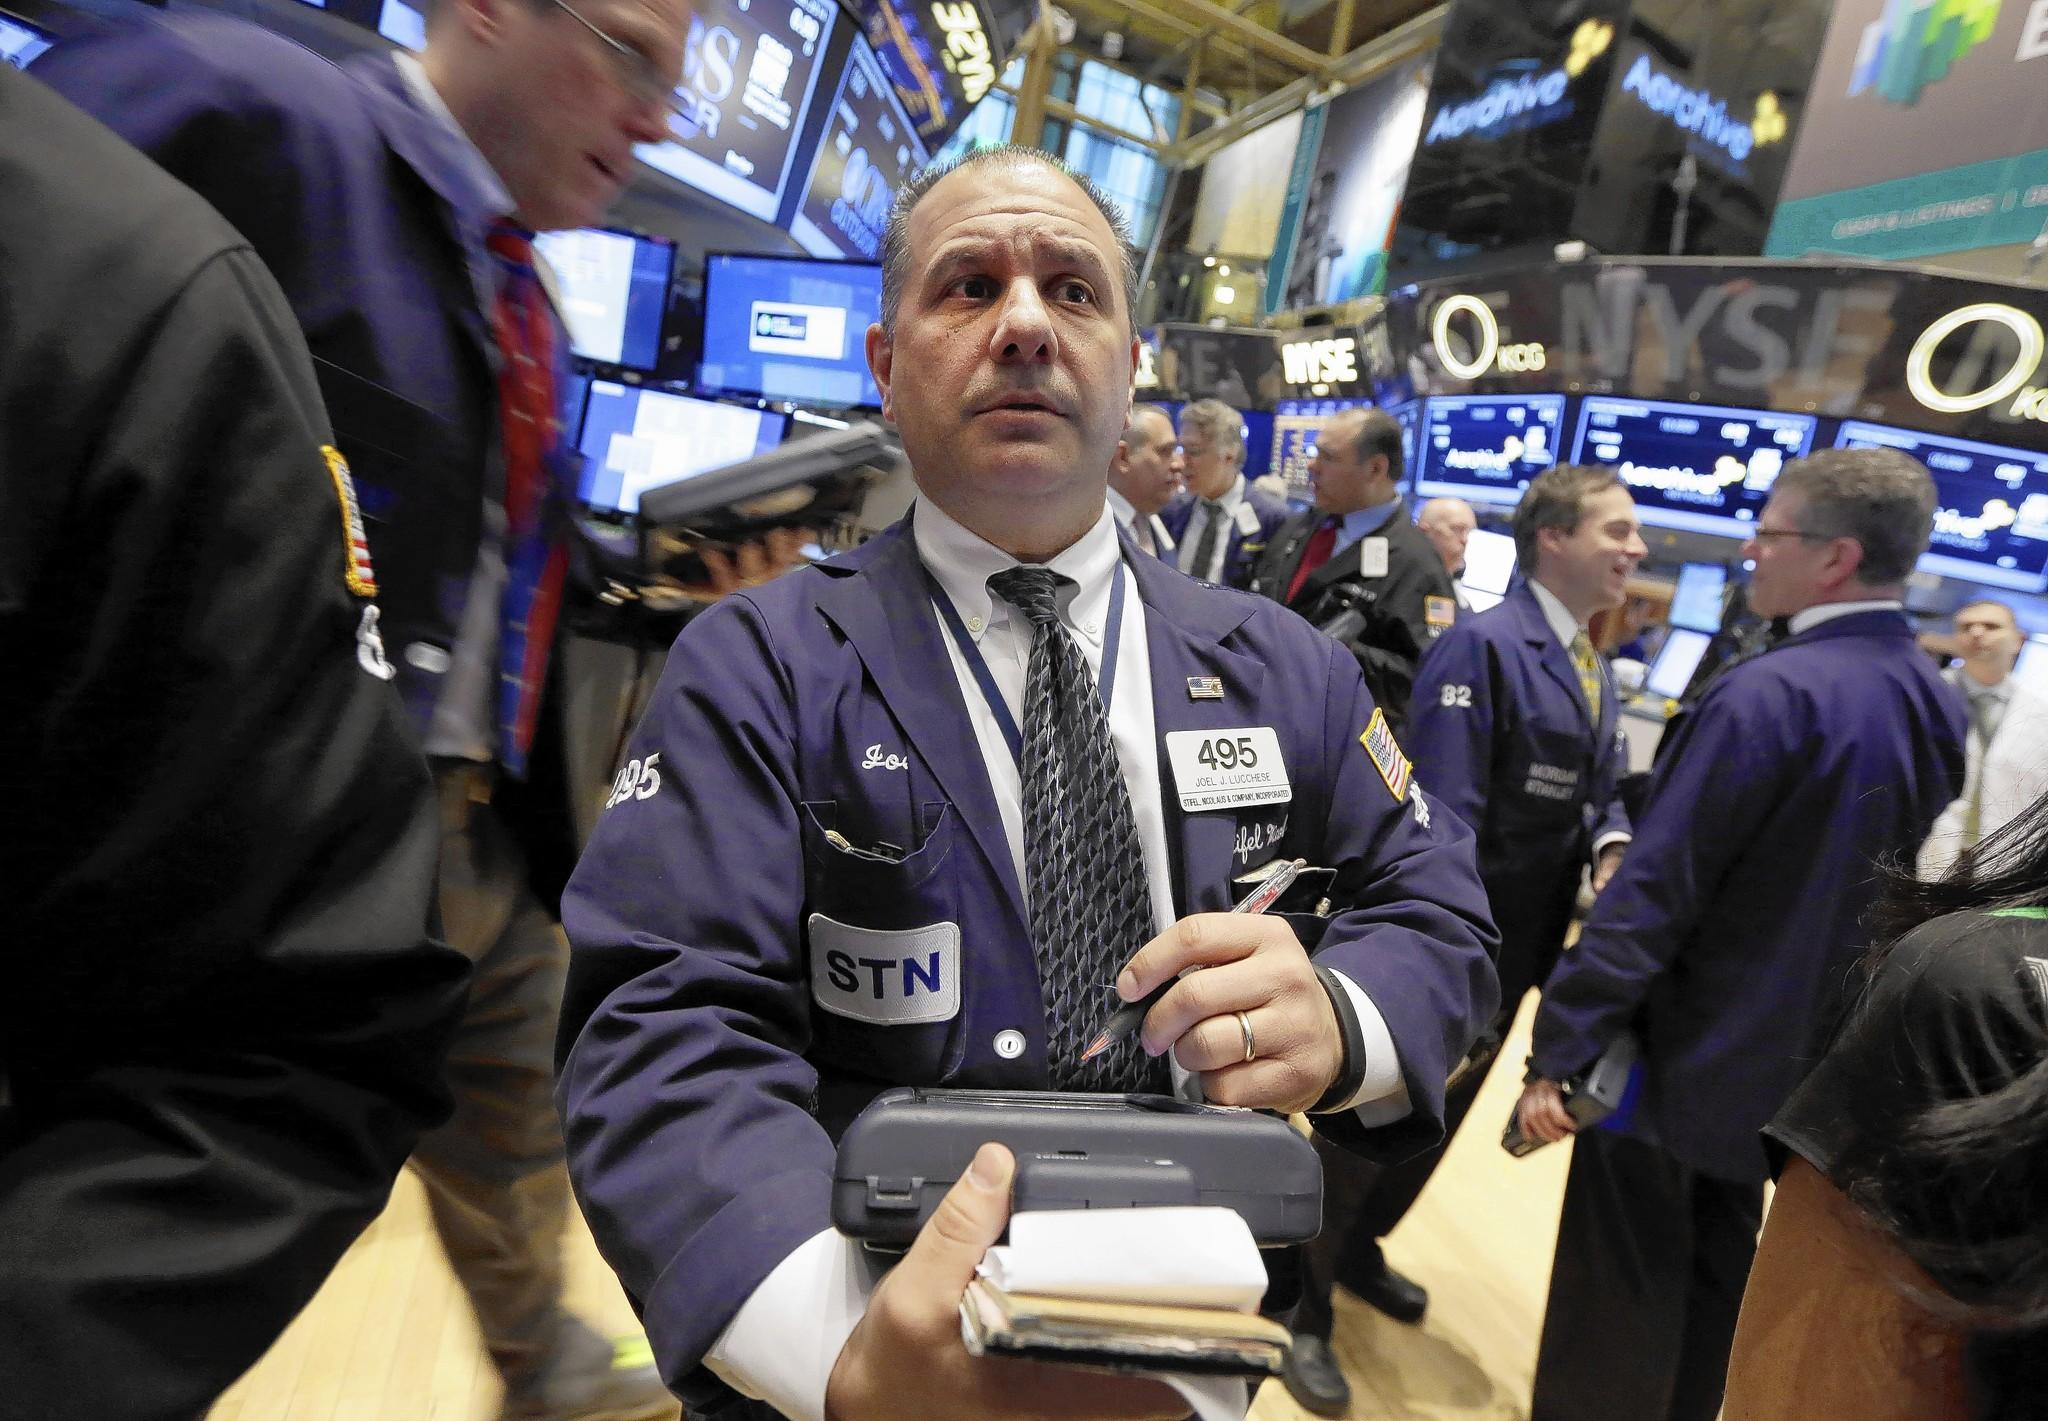 Stocks tumbled Friday, but the S&P 500 still is up 1% this year after bolting nearly 30% last year. Above, traders on the floor of the New York Stock Exchange.